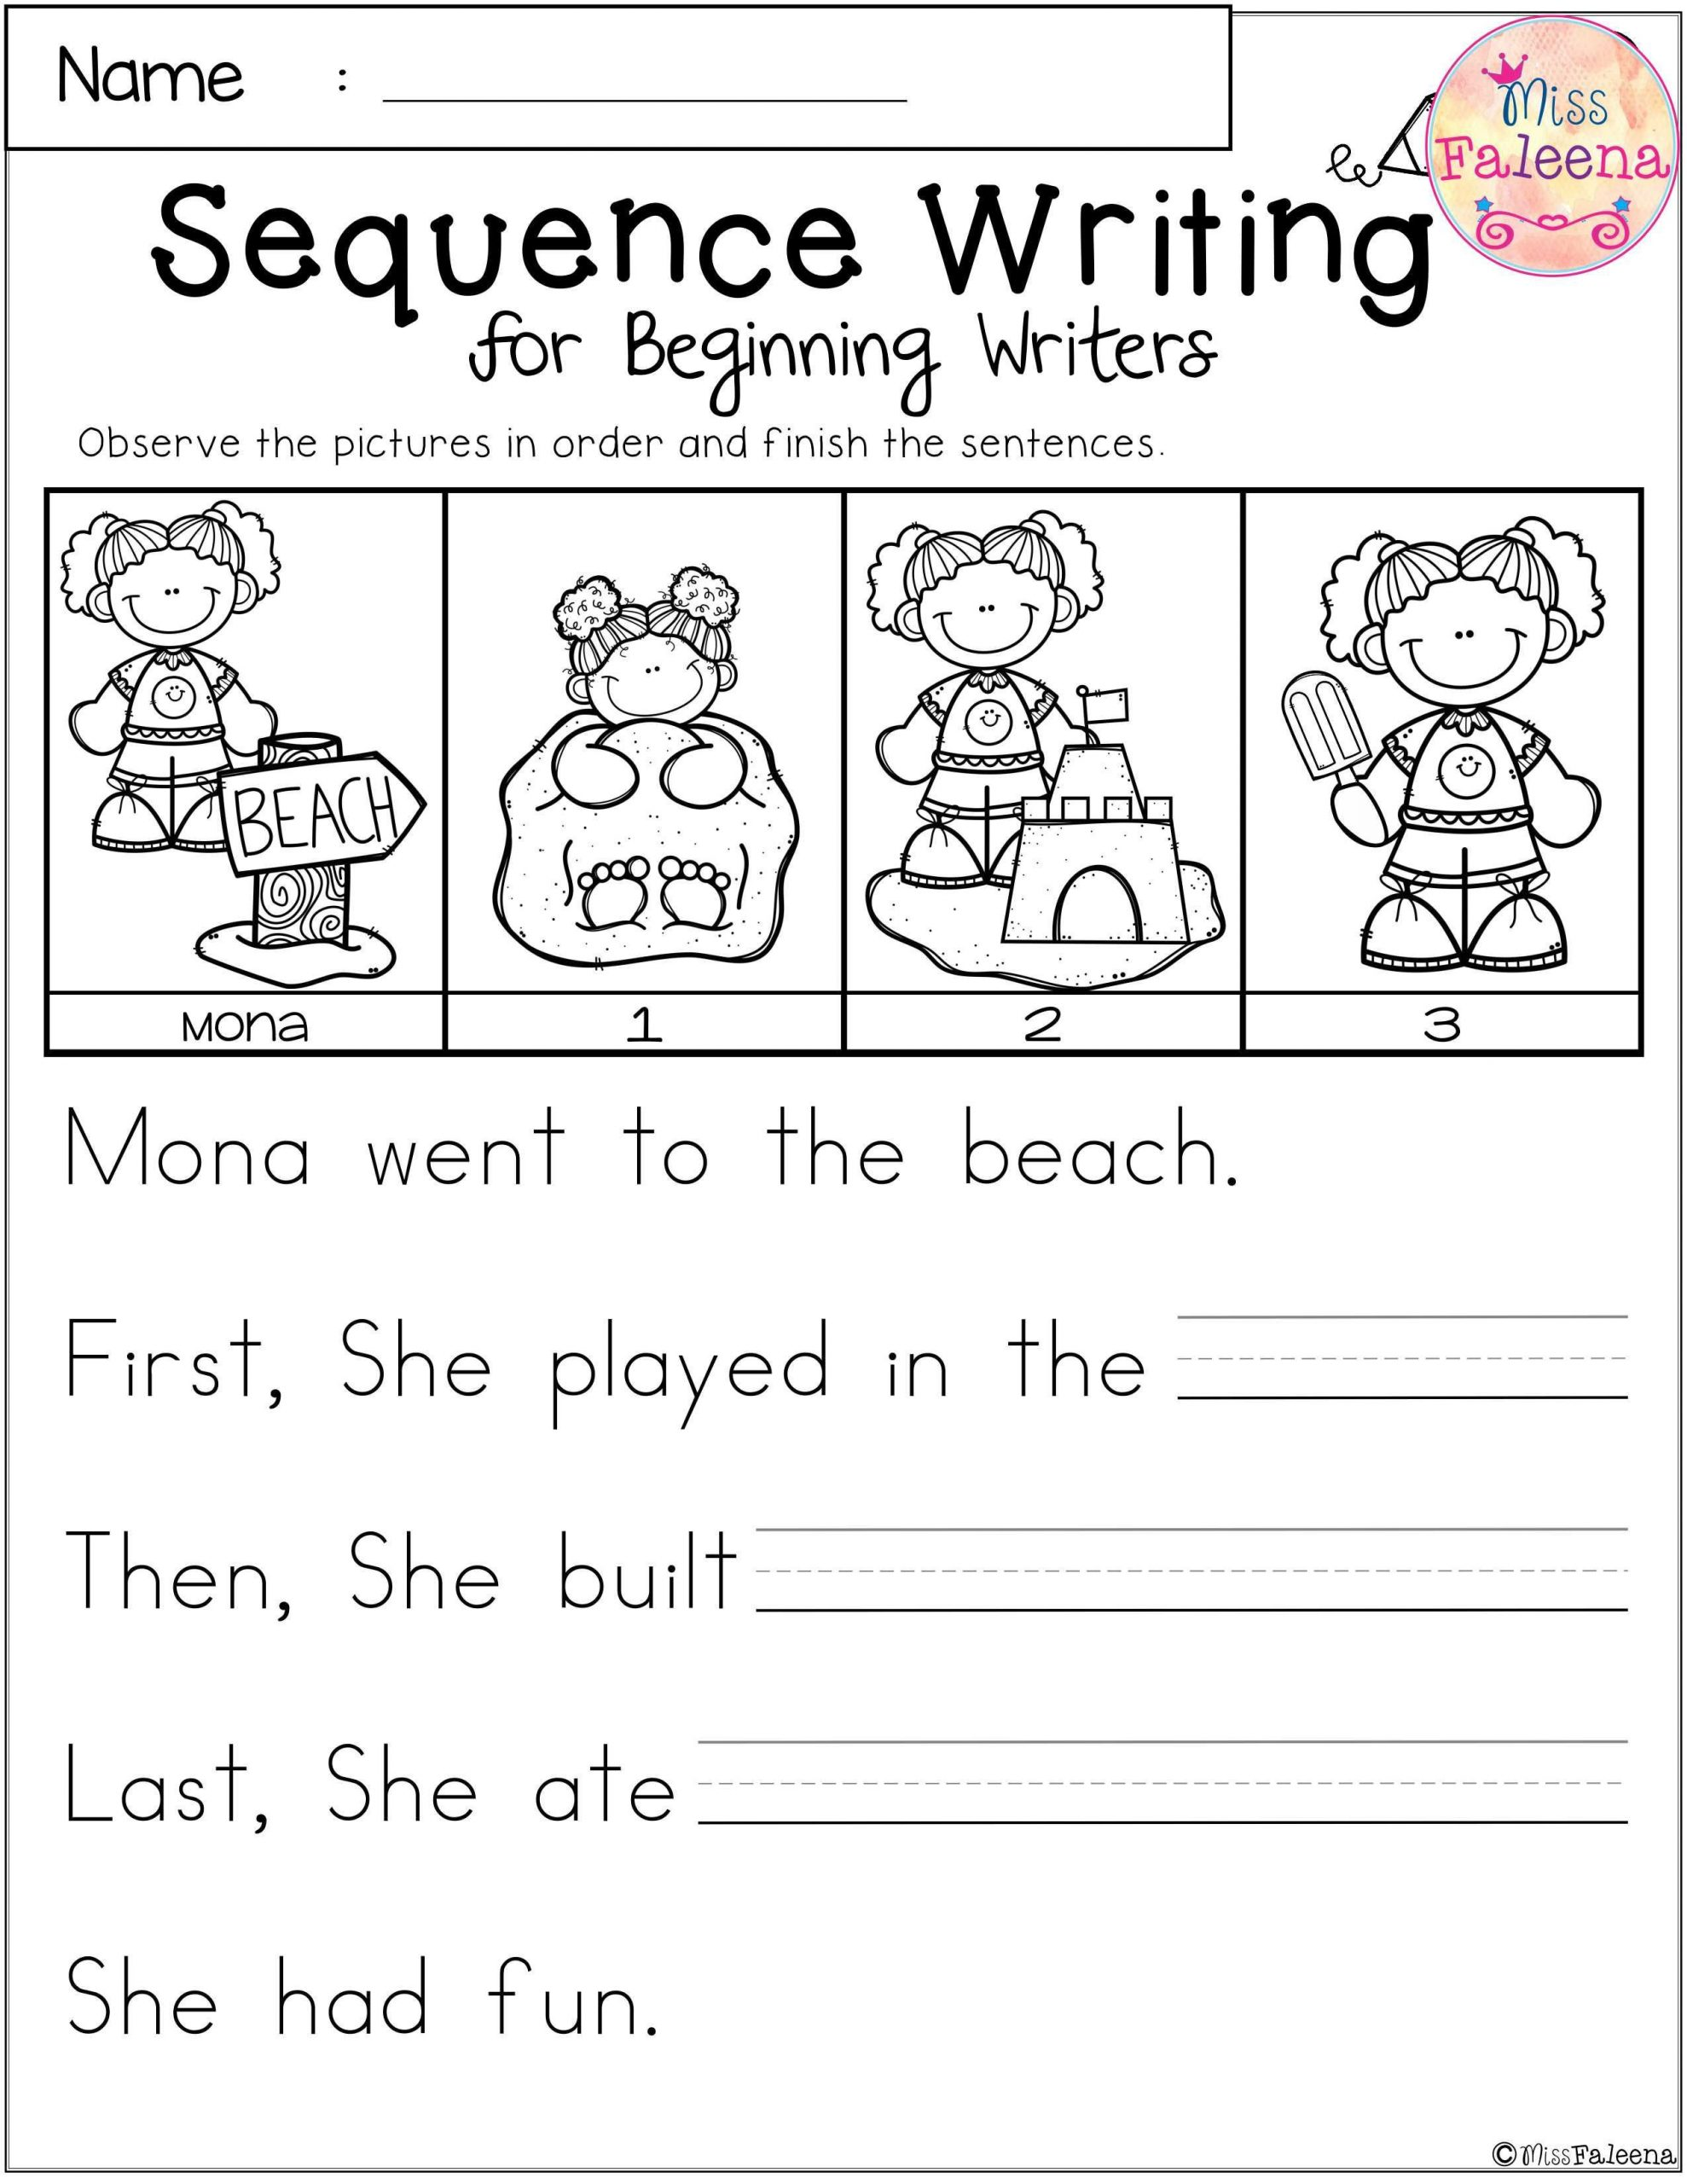 Sequencing Worksheets for 1st Grade Free Sequence Writing for Beginning Writers